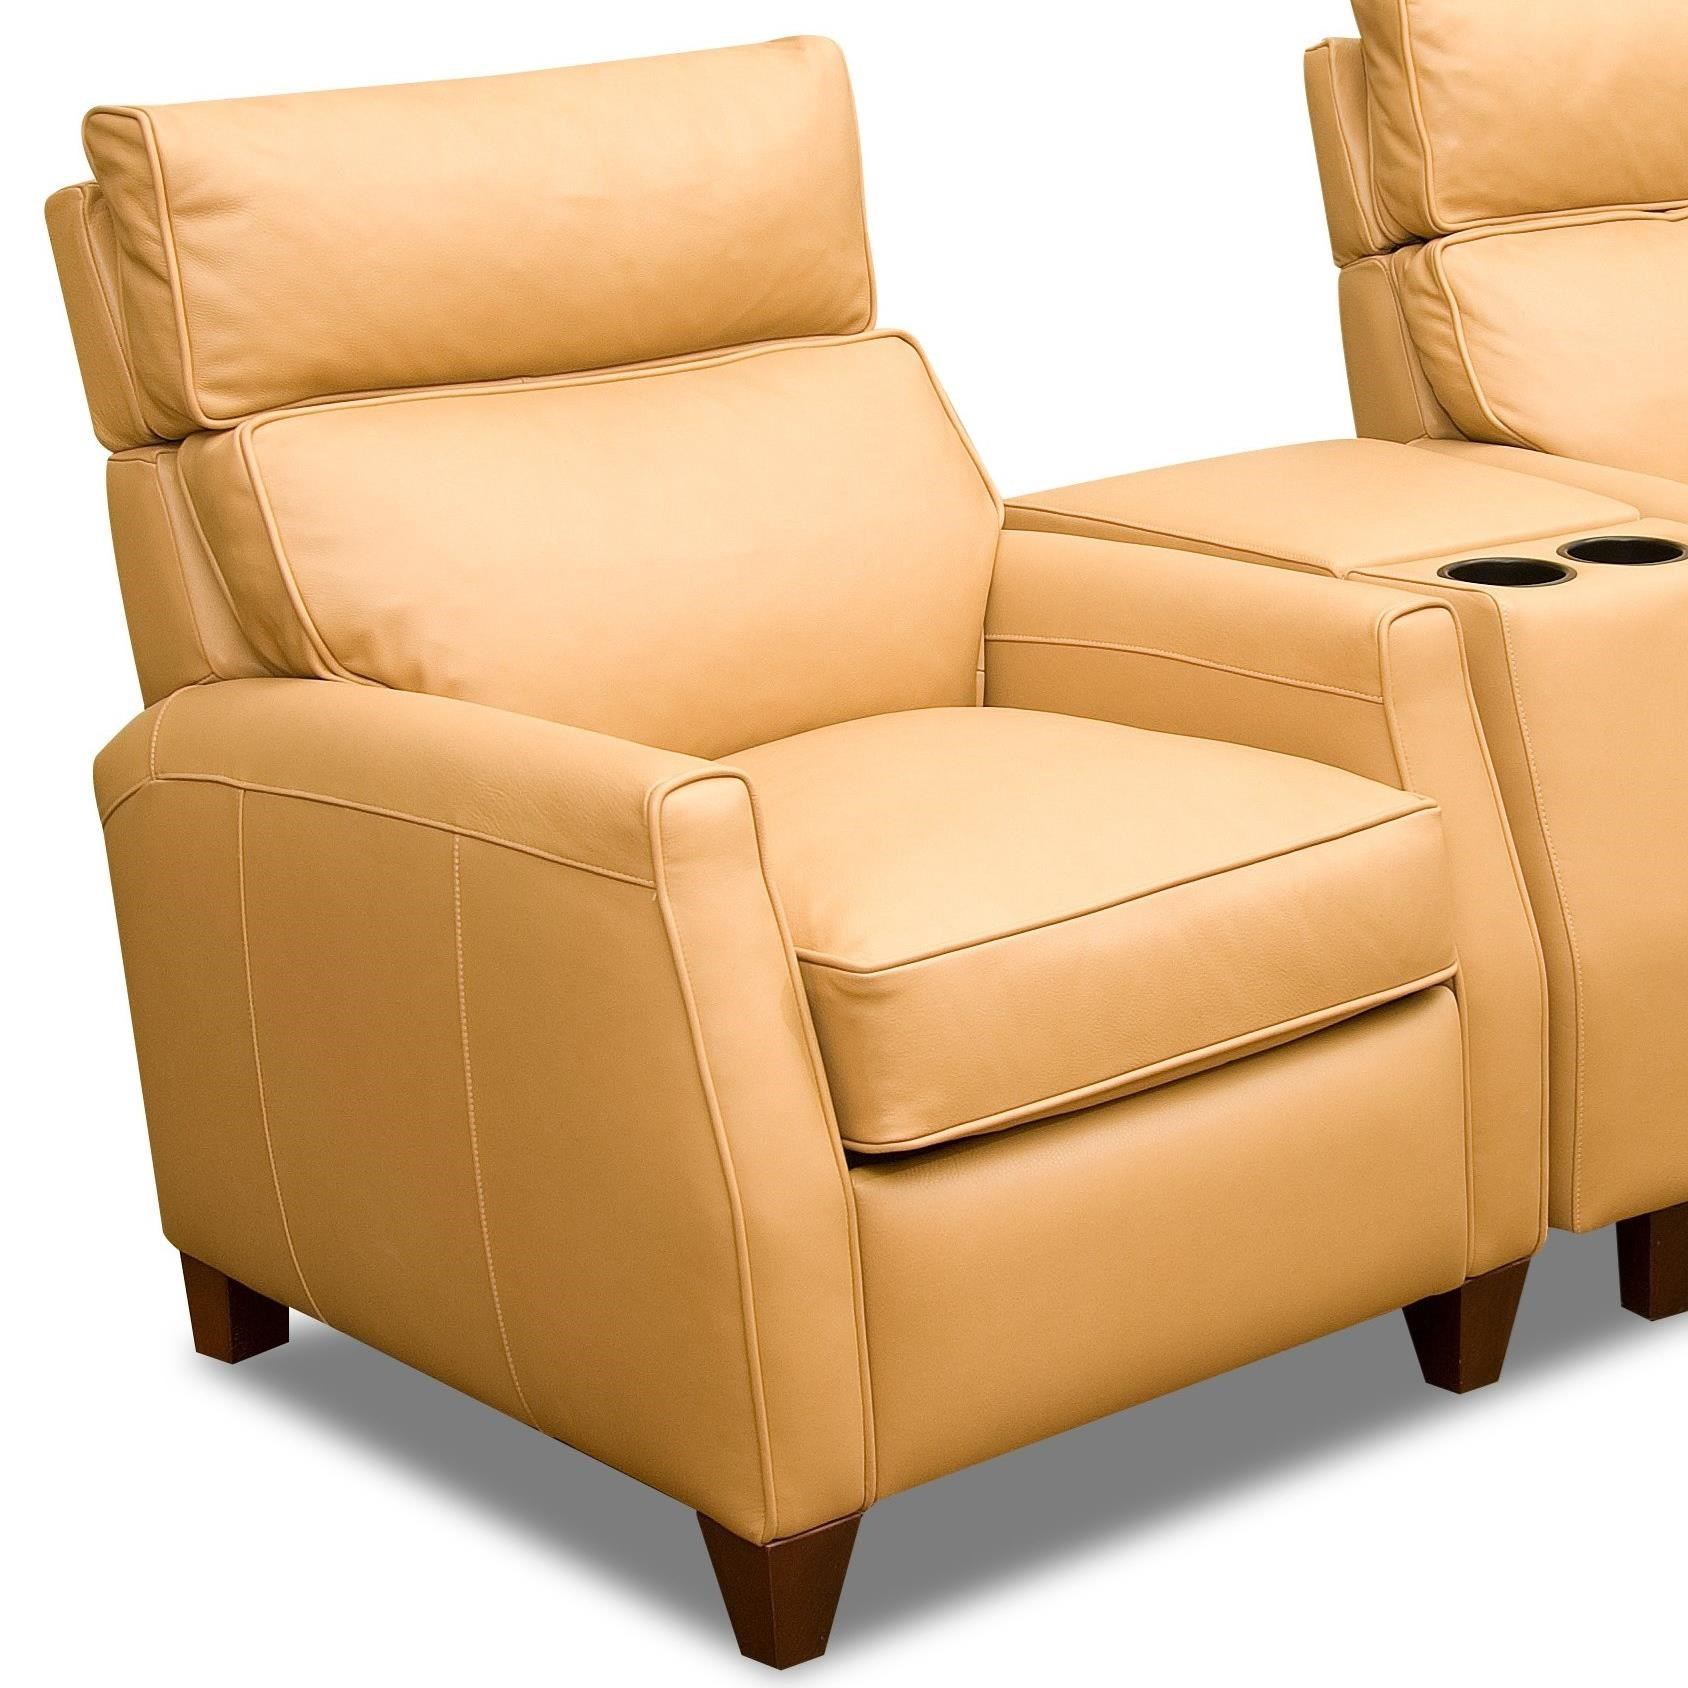 Collins High Leg Recliner by Comfort Design at Stuckey Furniture